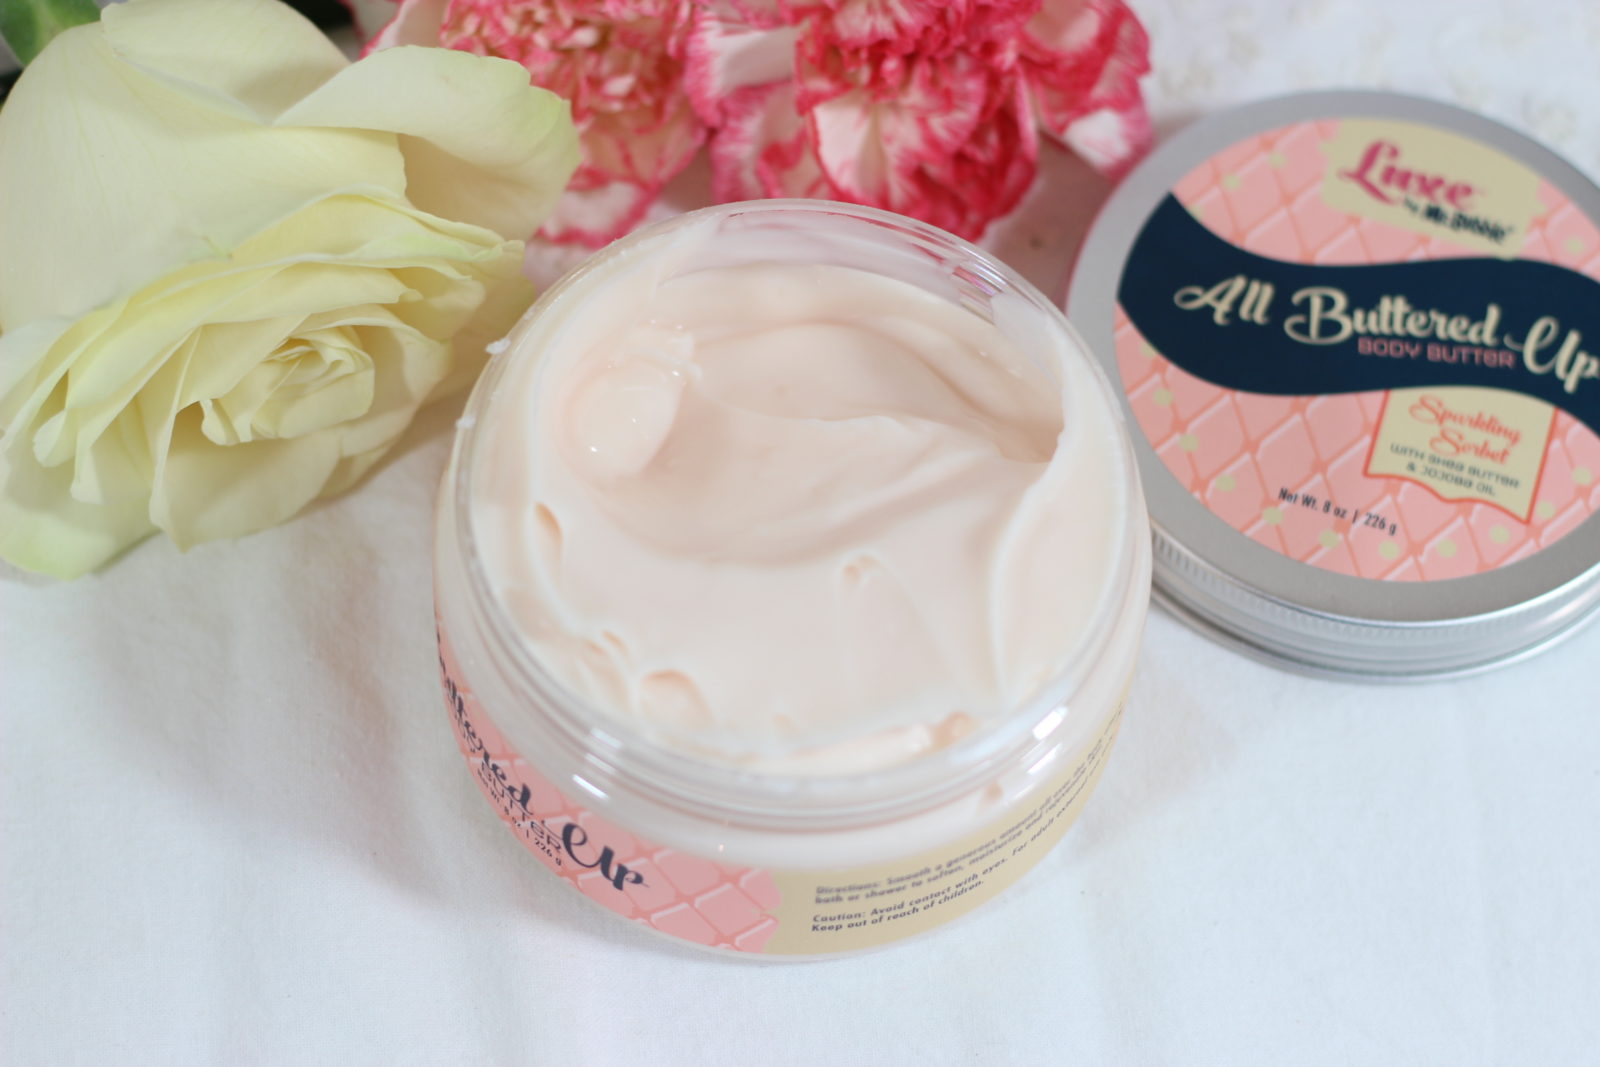 Luxe by Mr. Bubble Body Butter